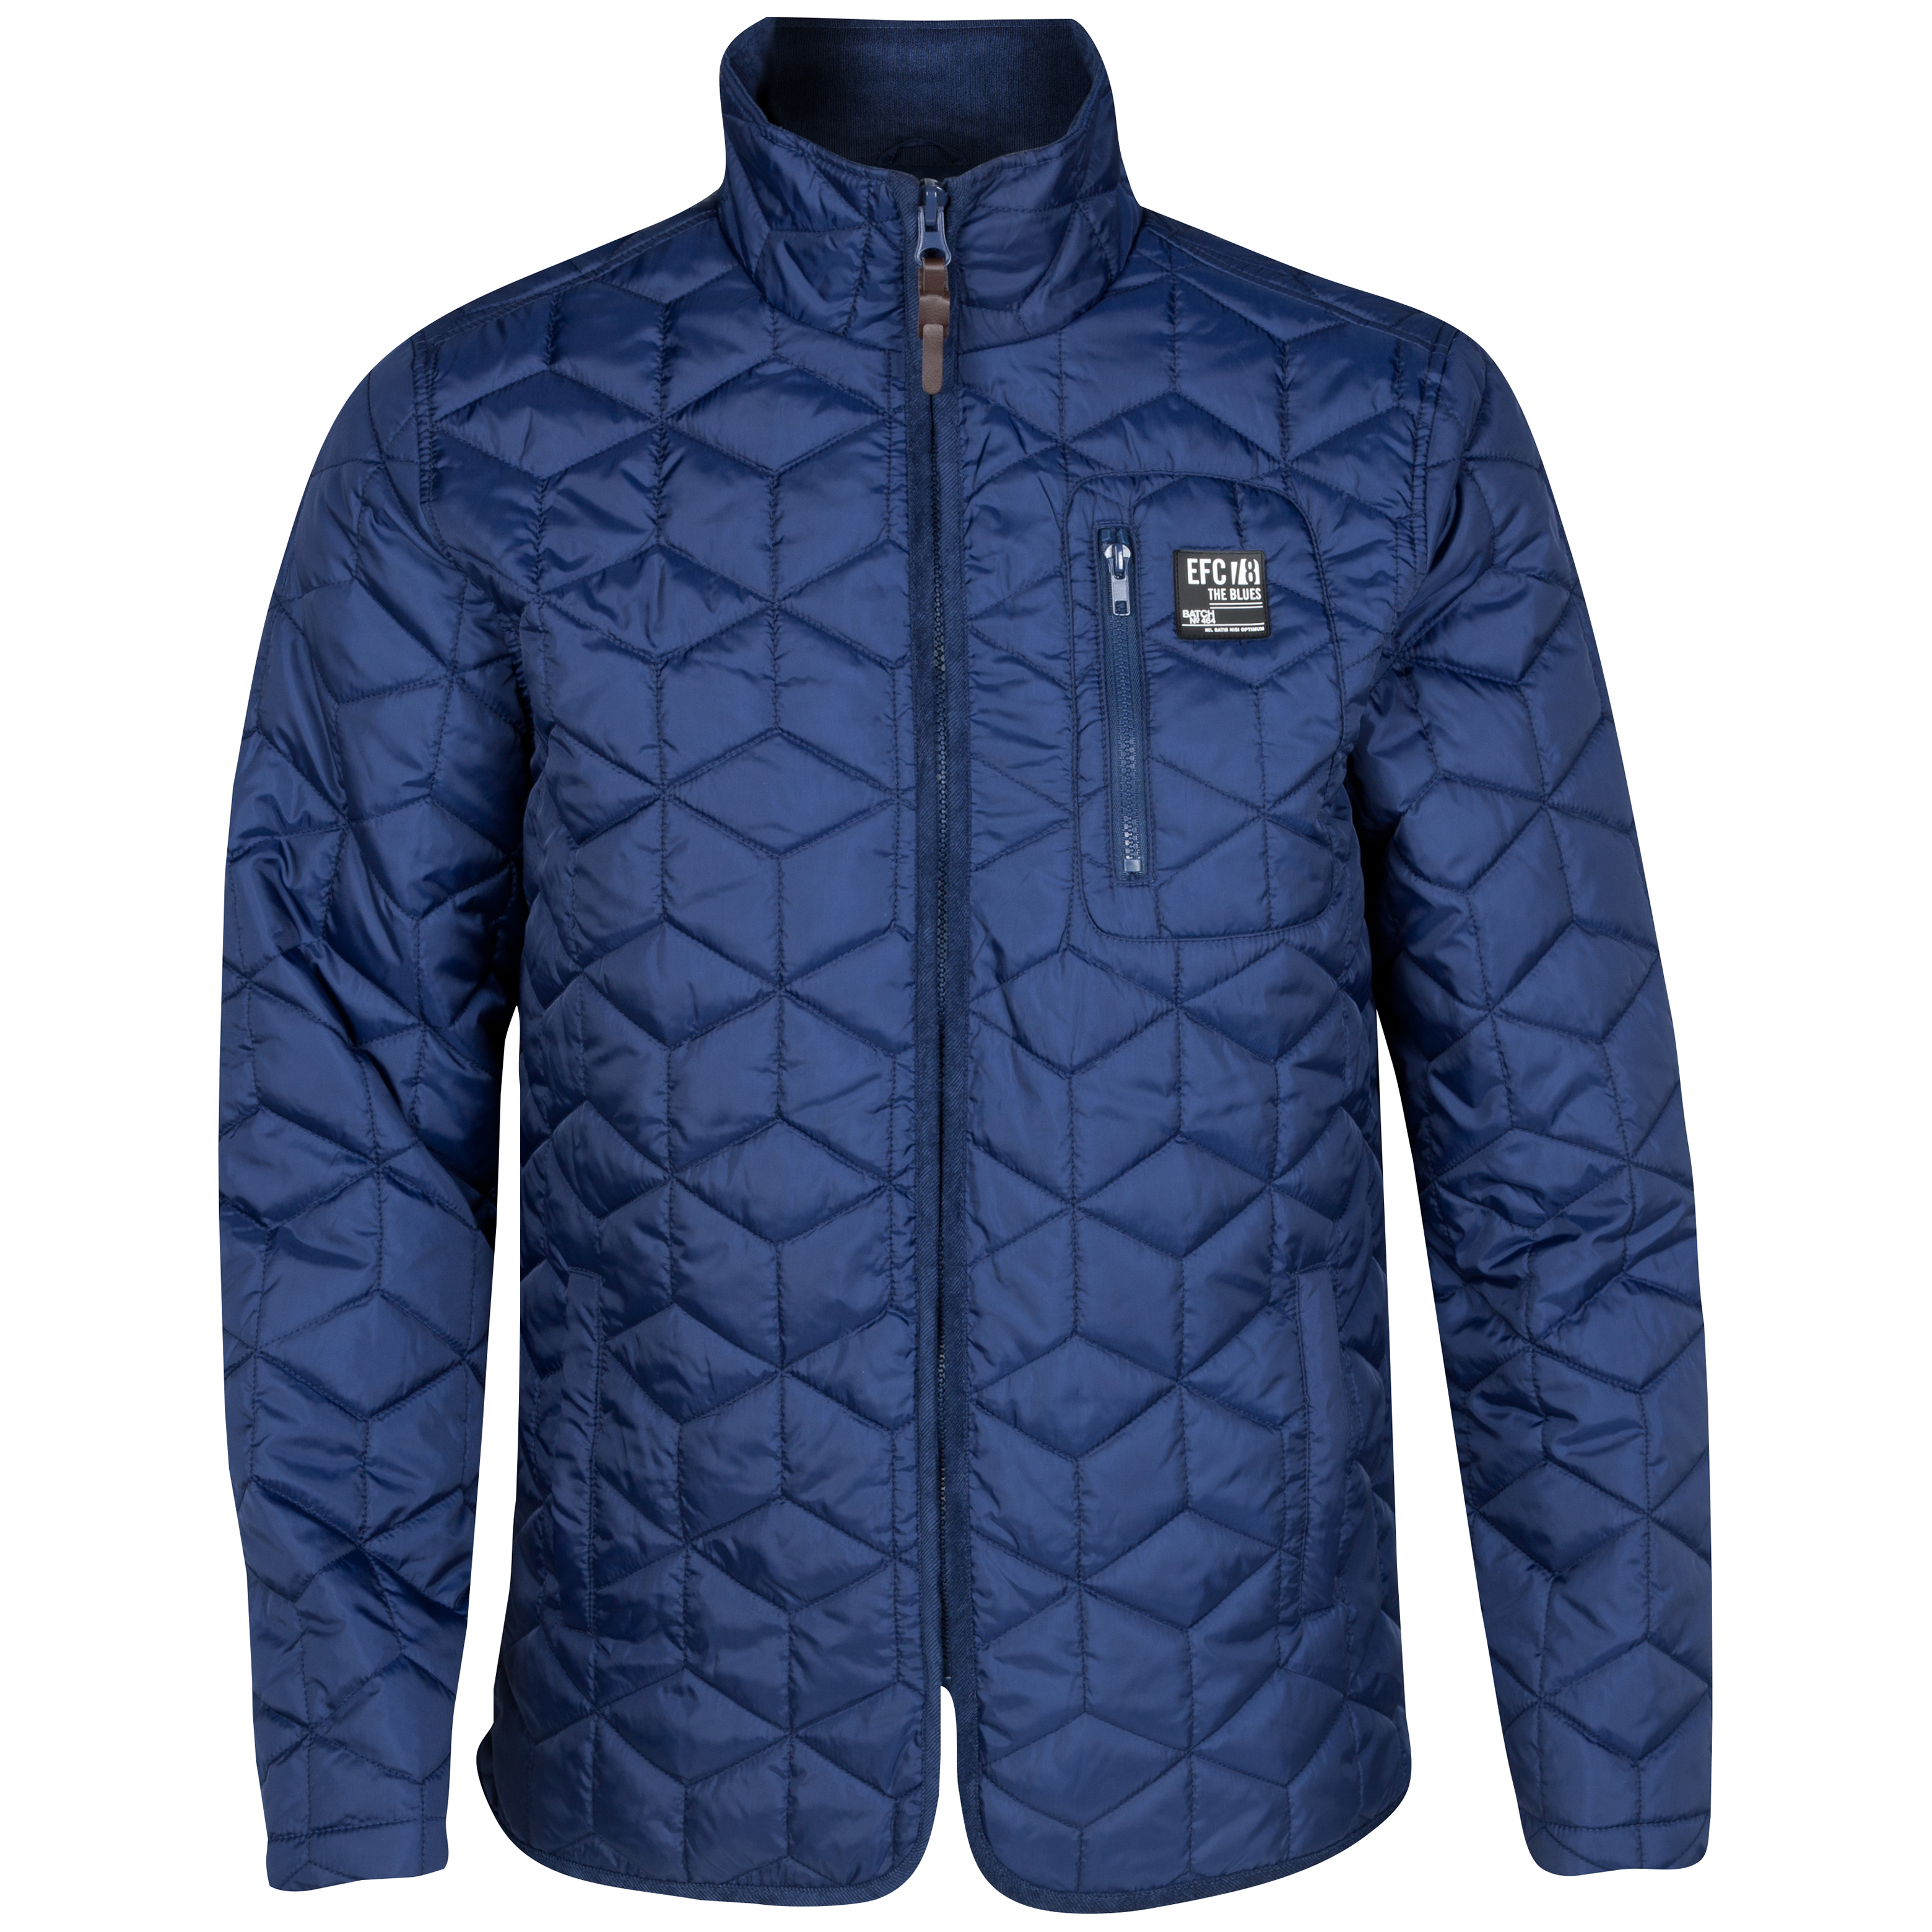 Everton Patchwork Jacket - Navy